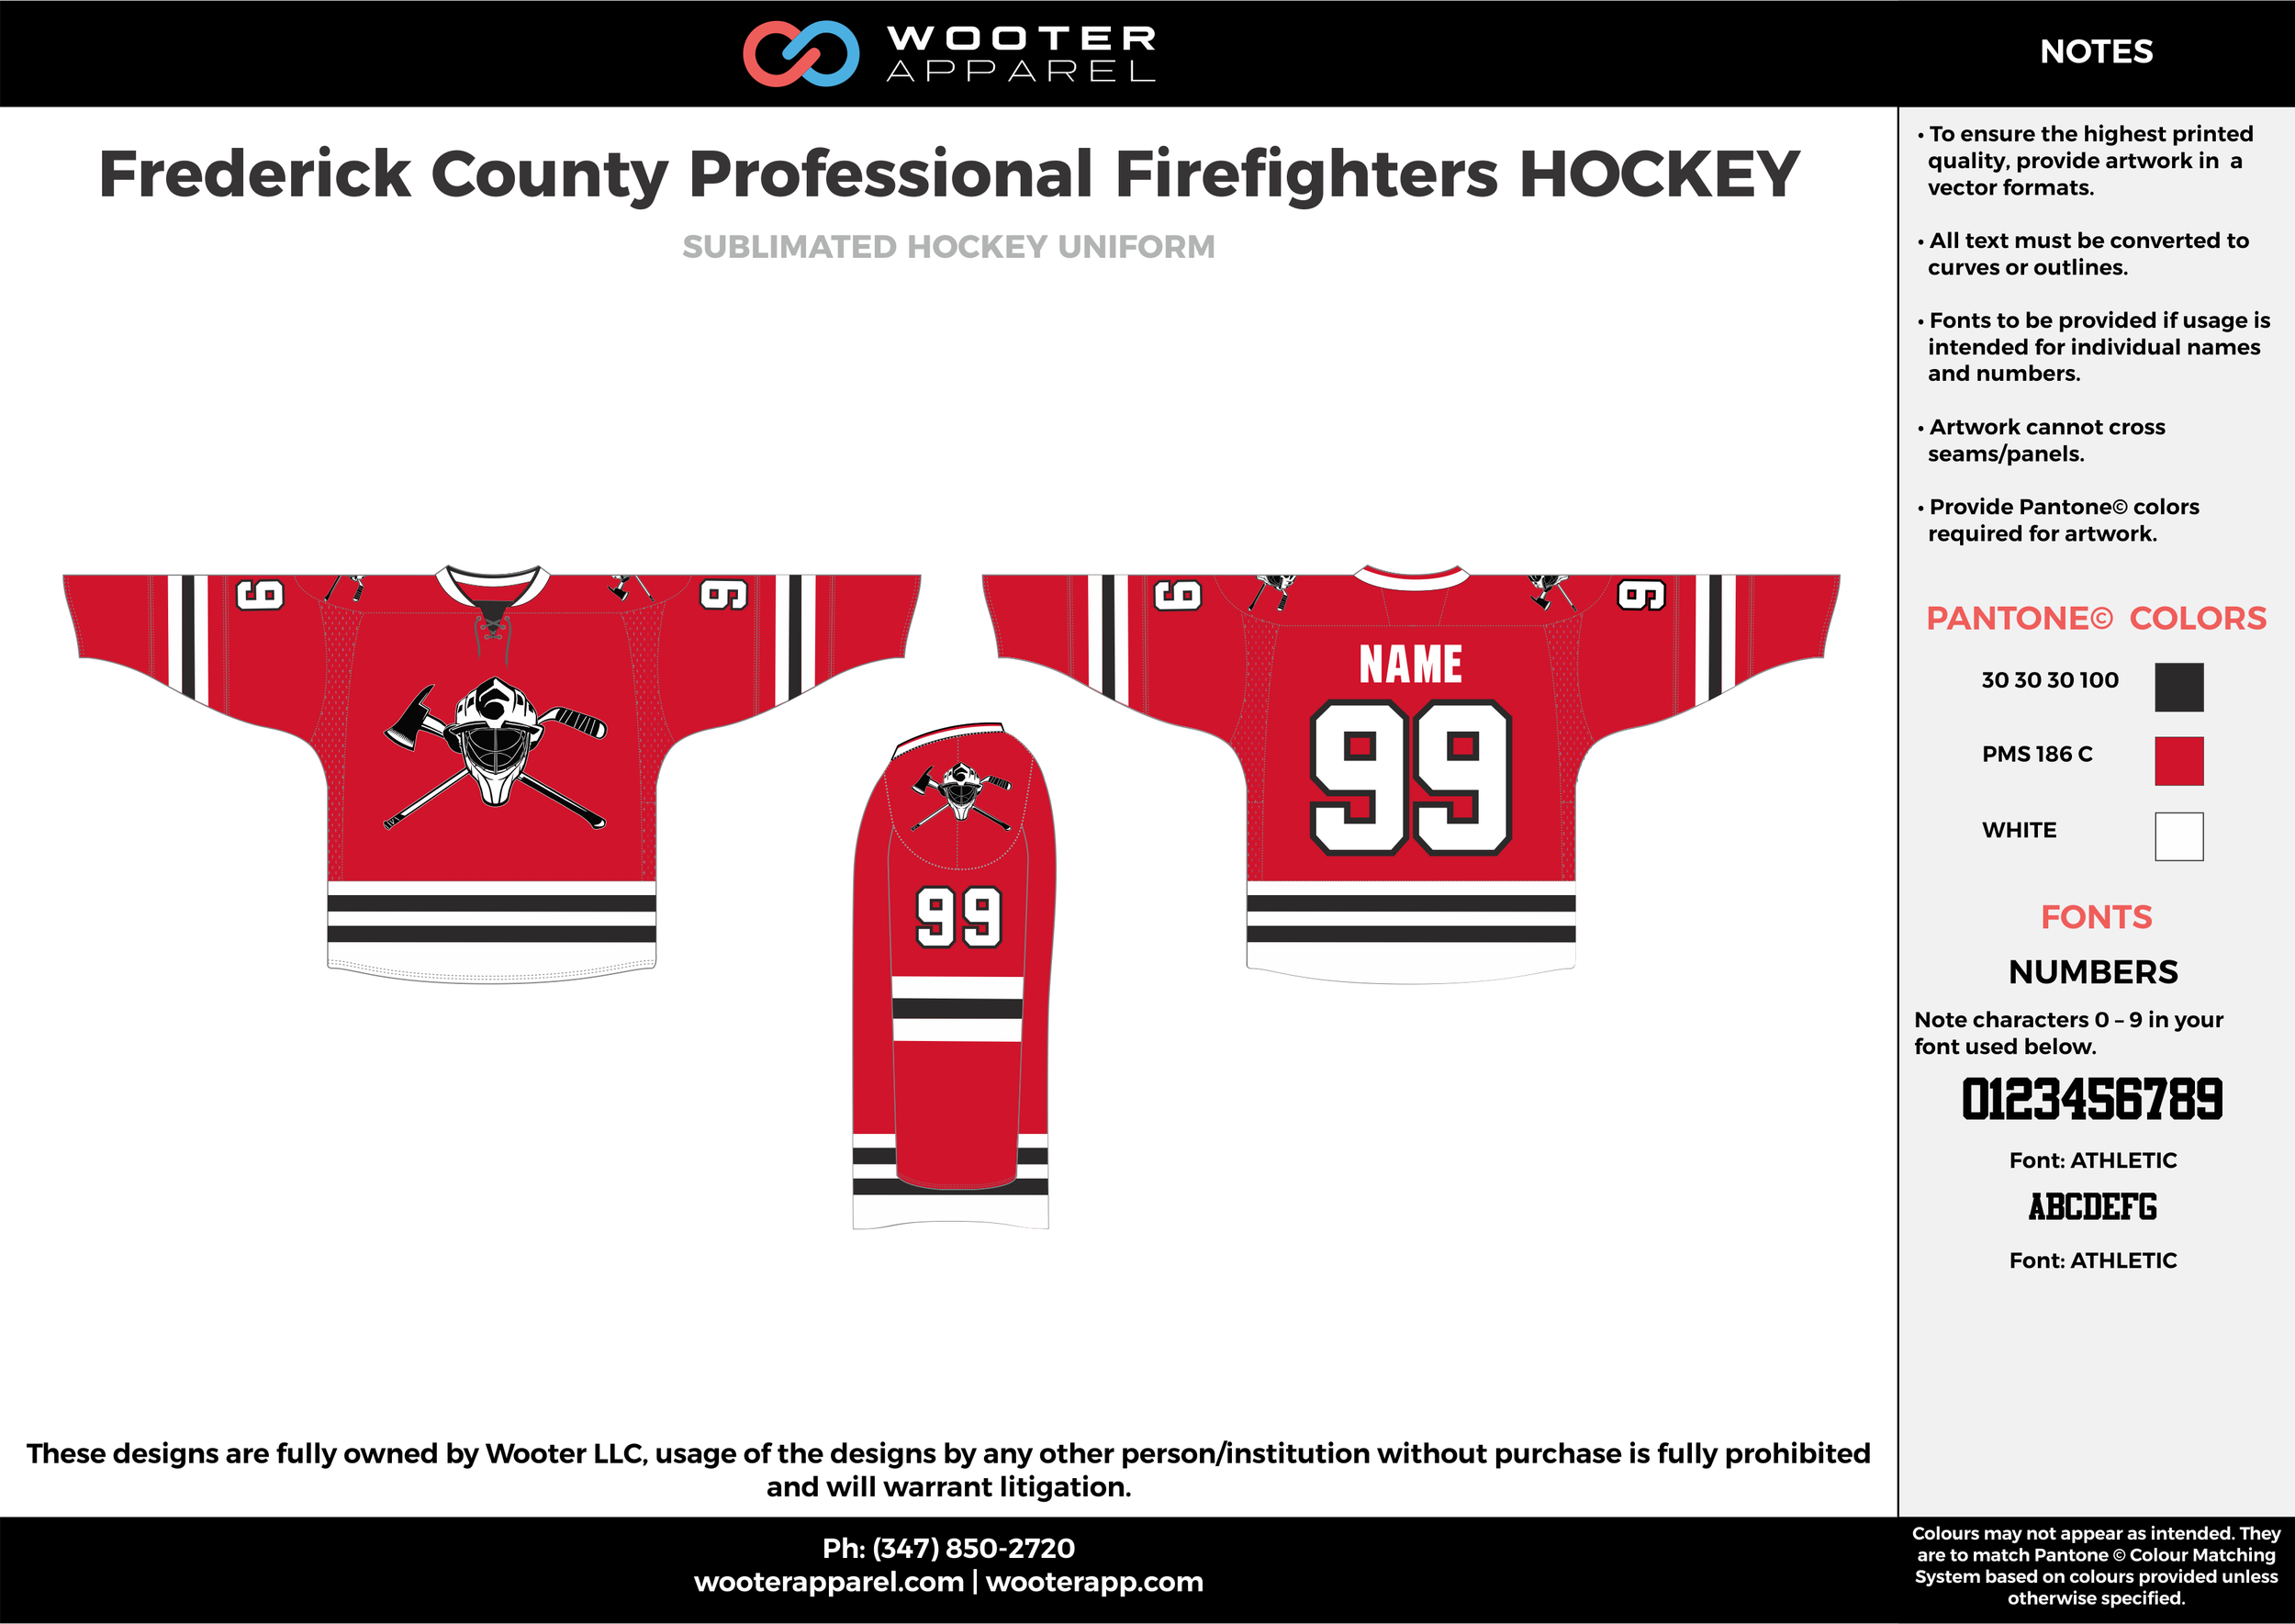 Frederick County Professional Firefighters HOCKEY red black white hockey uniforms jerseys socks